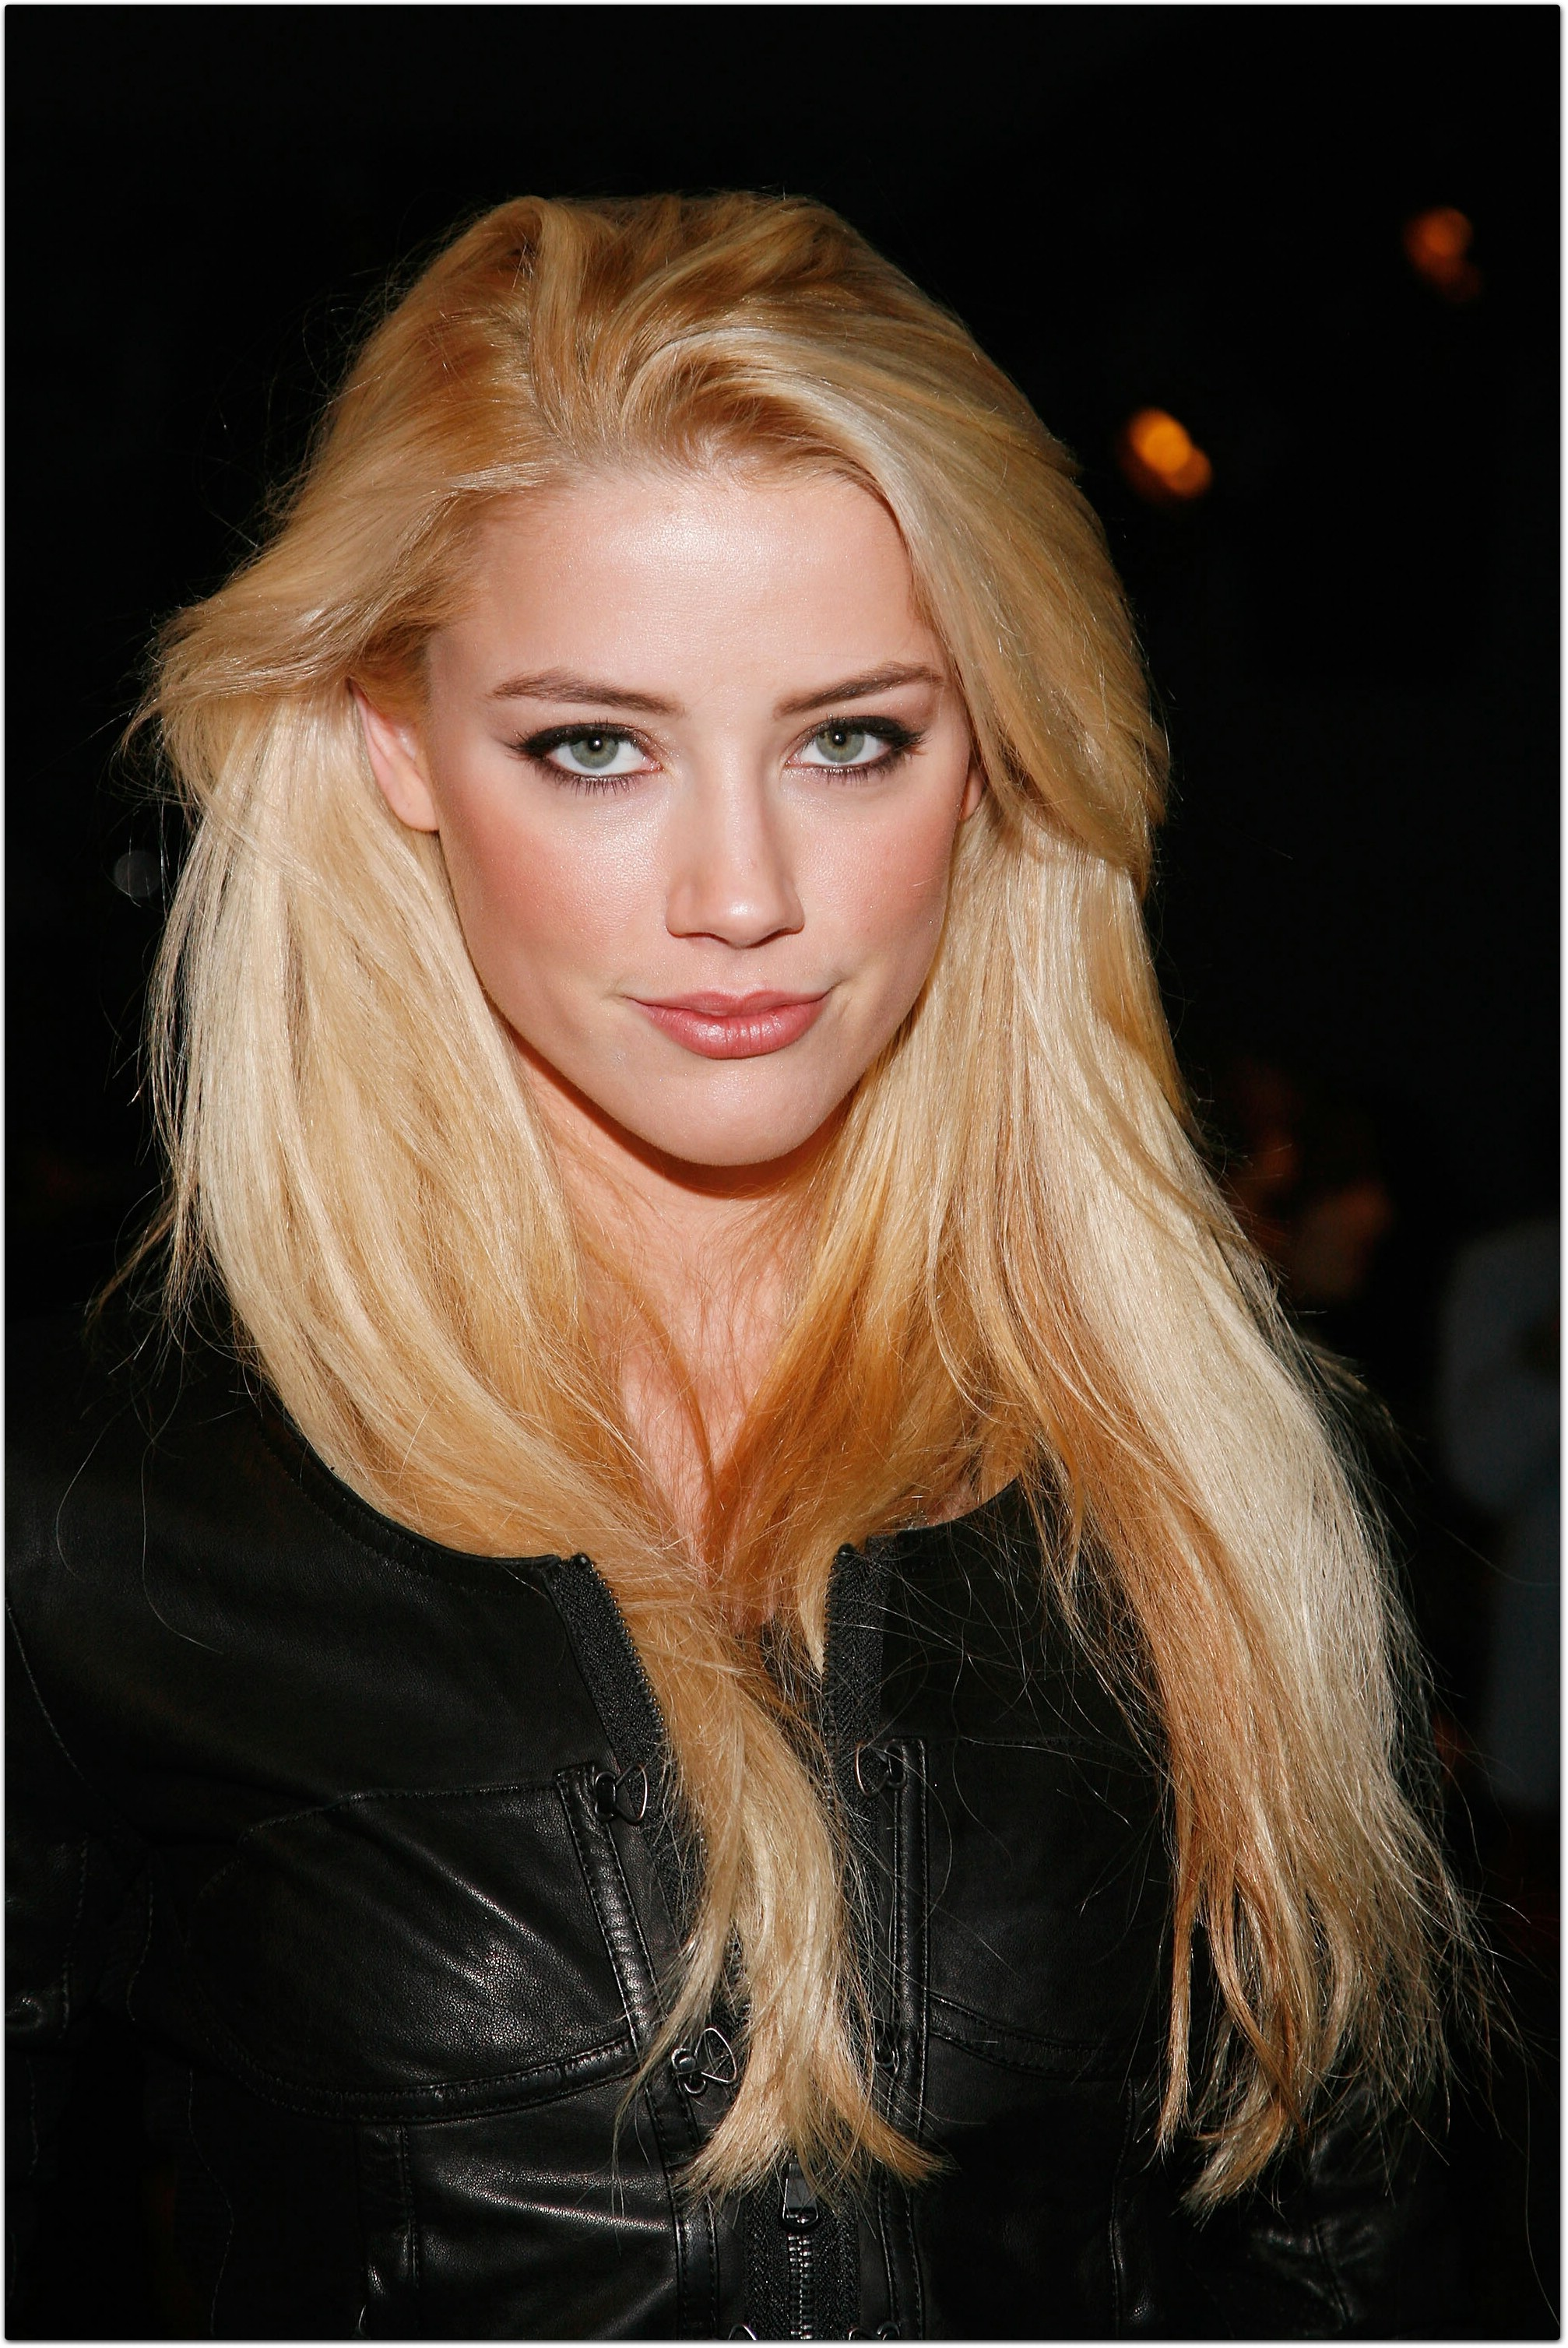 Actresses images Amber Heard HD wallpaper and background photos ... Amber Heard